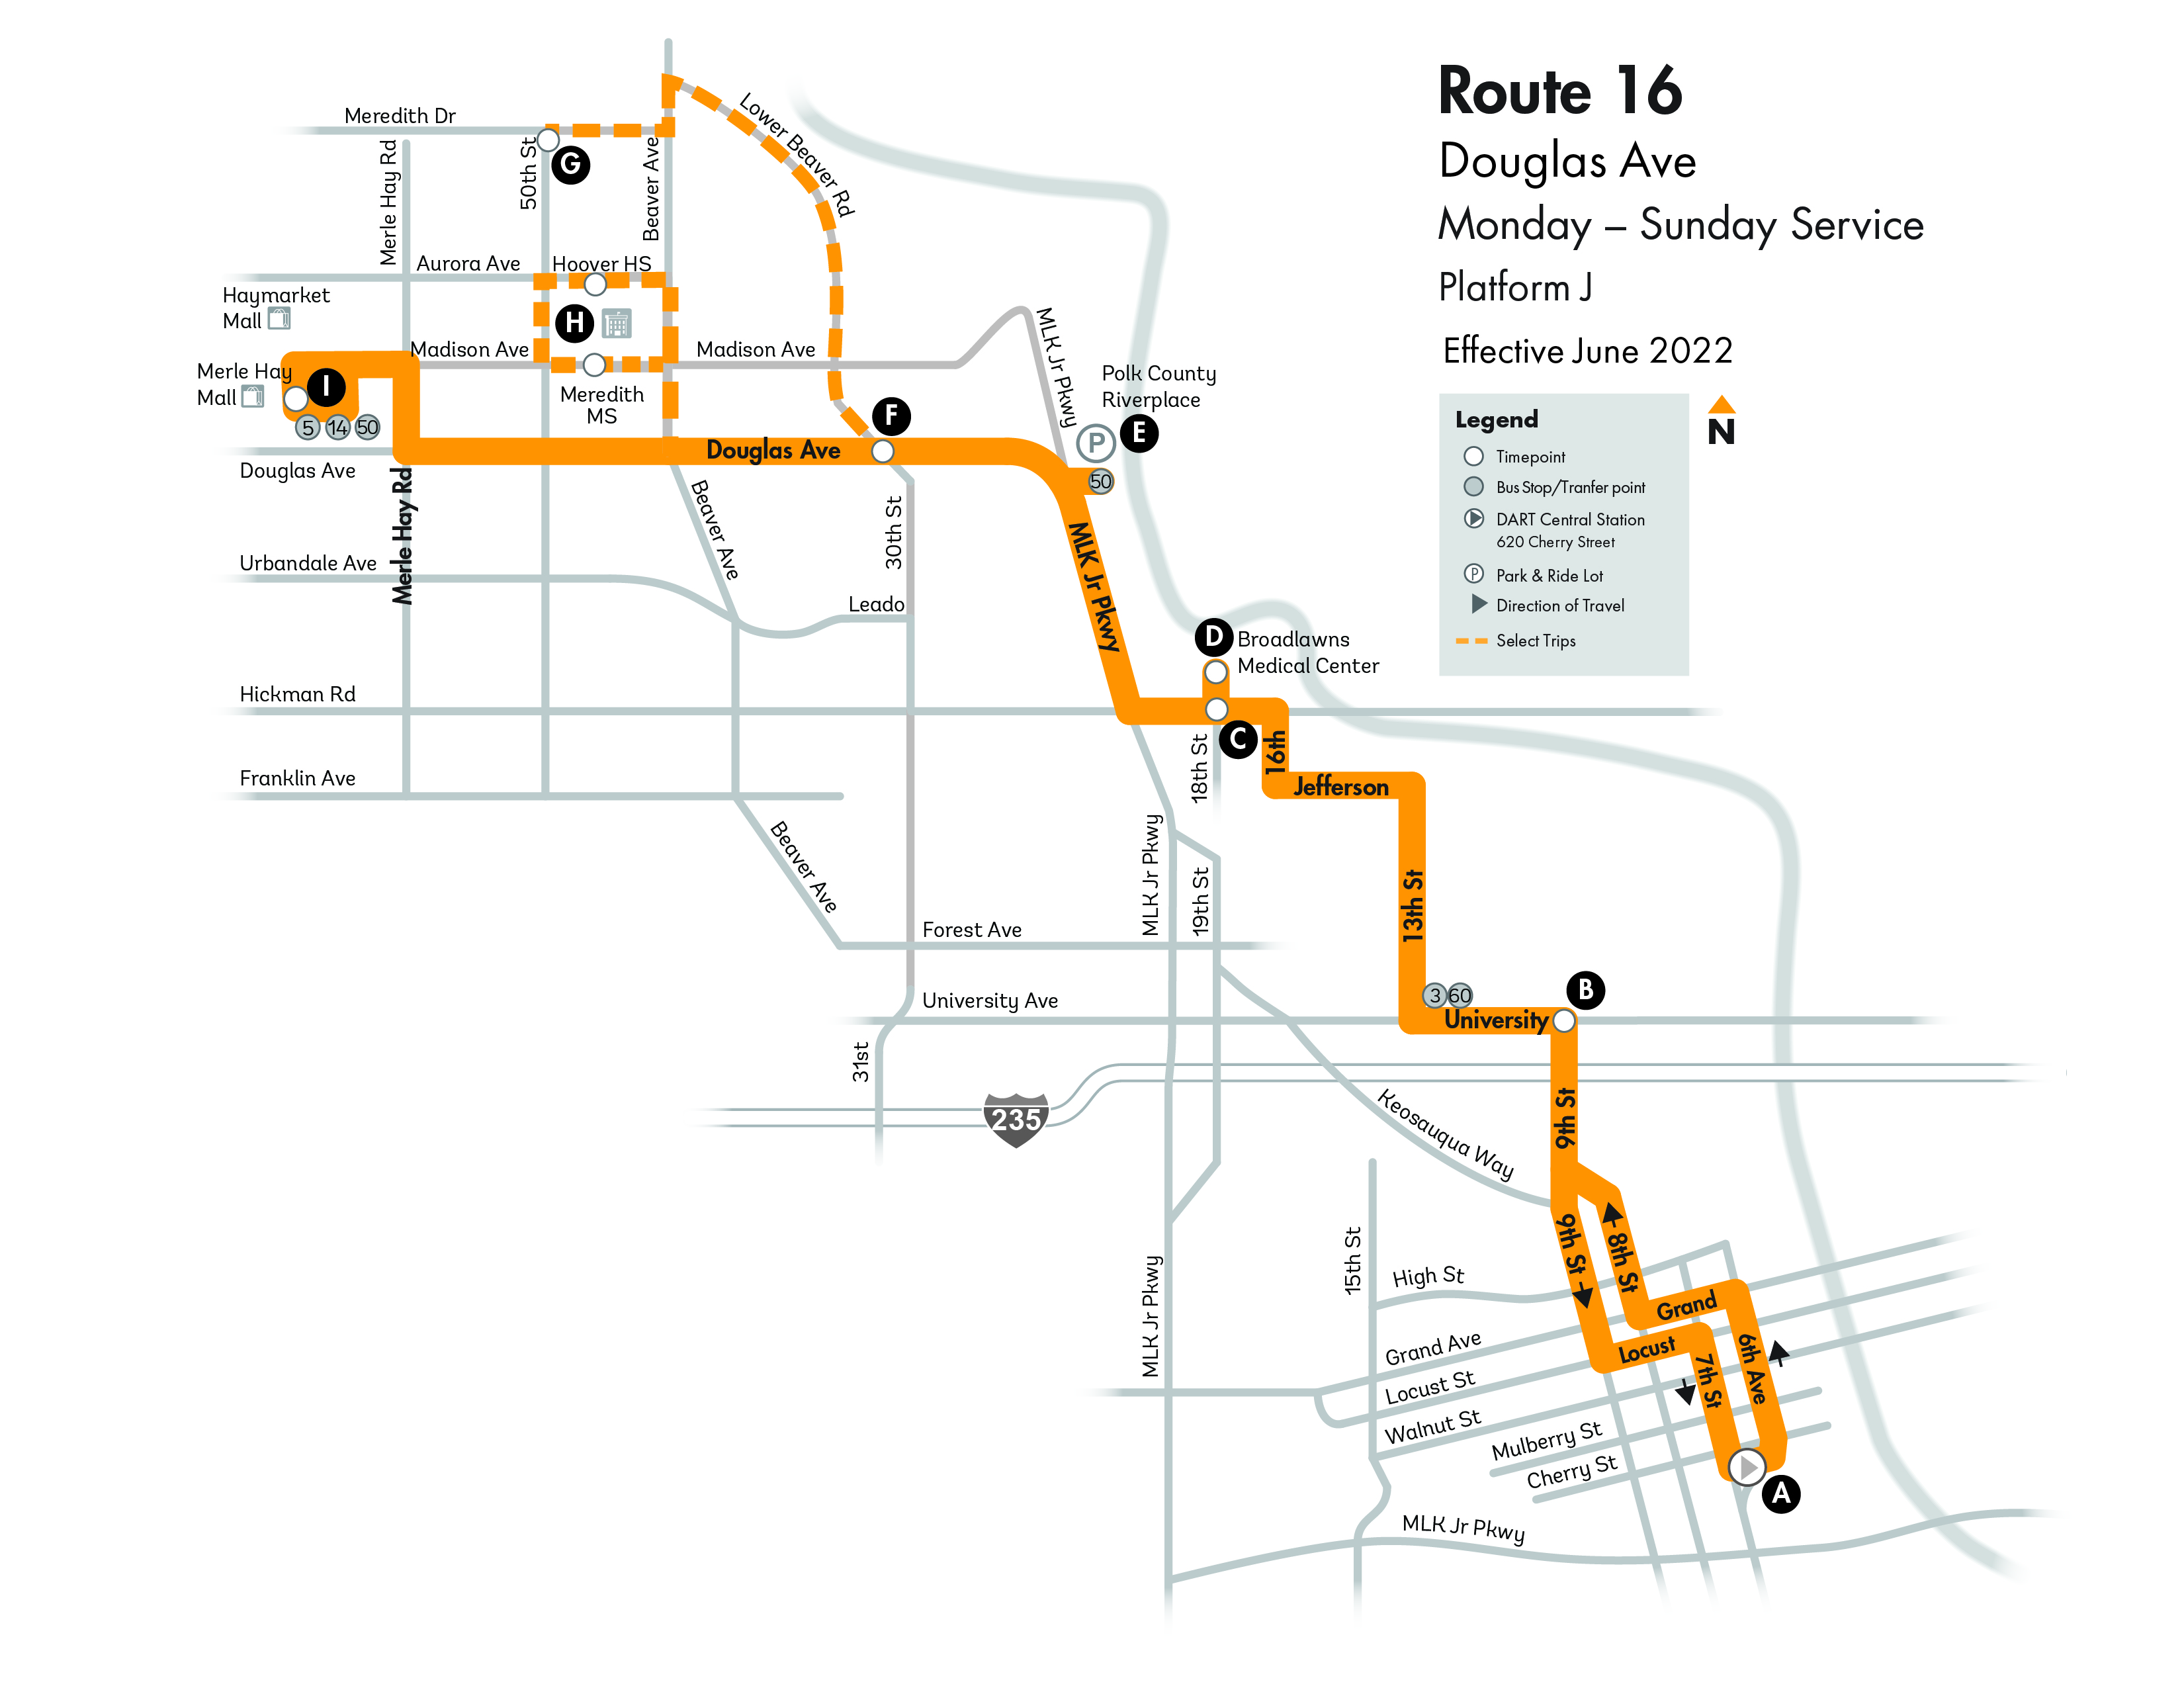 DART Local Route 16 - Douglas Map